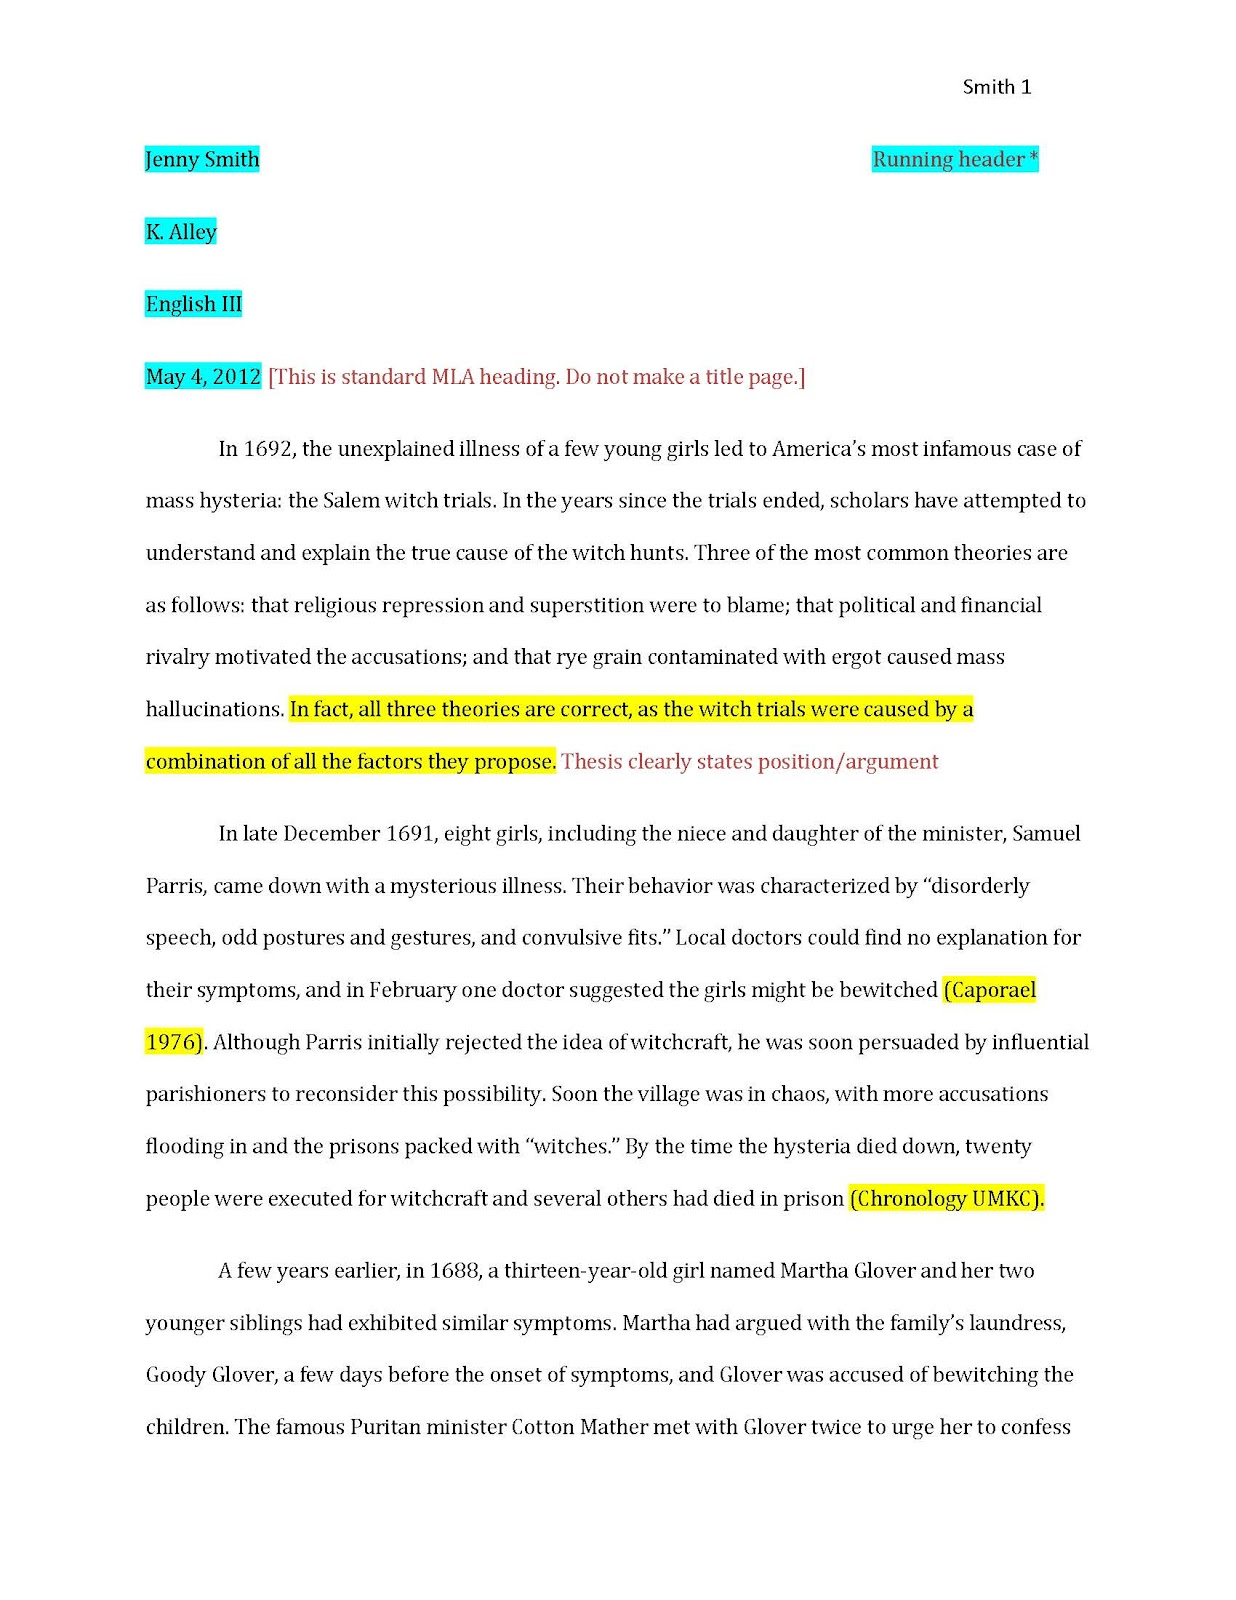 citation examples in essays template citation examples in essays